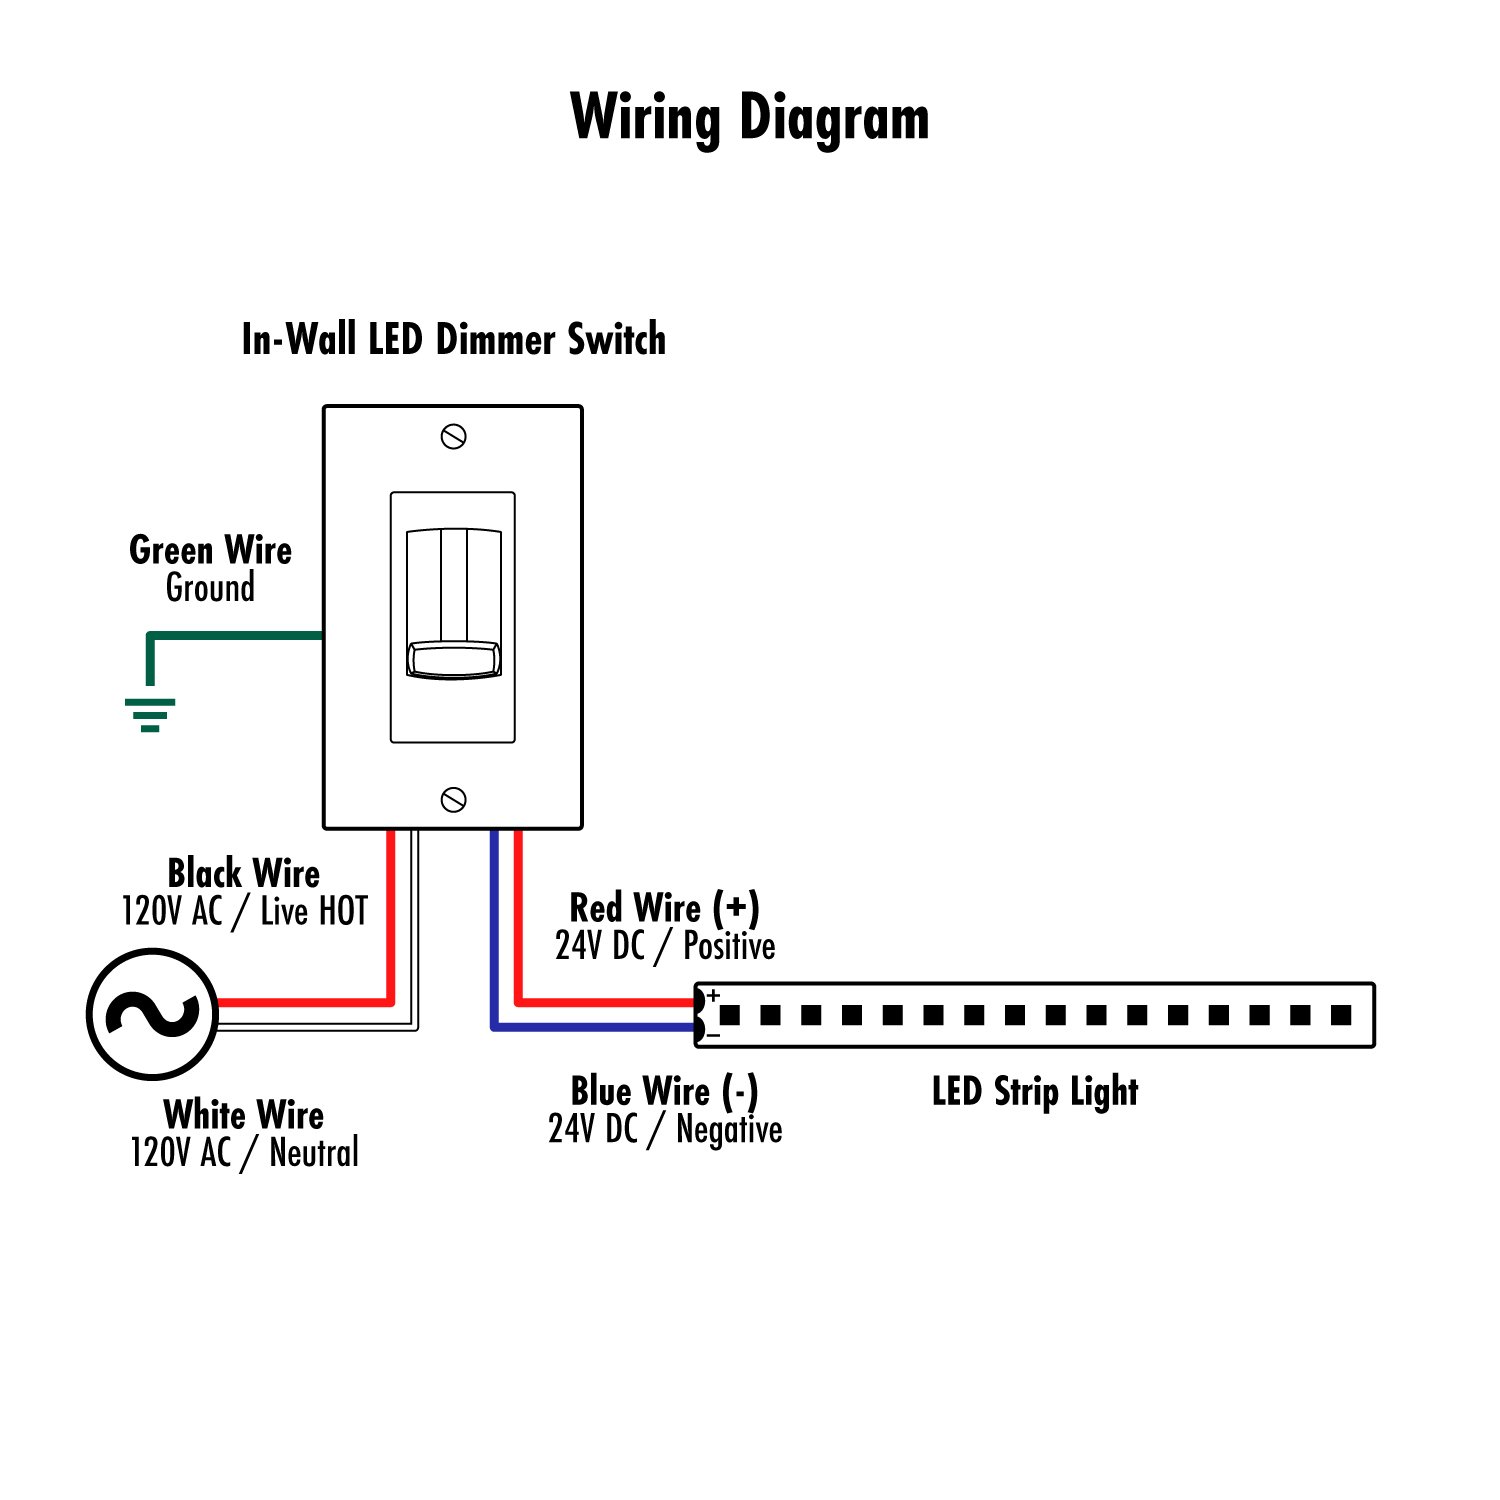 In Wall LED 40V AC Dimmer and Driver